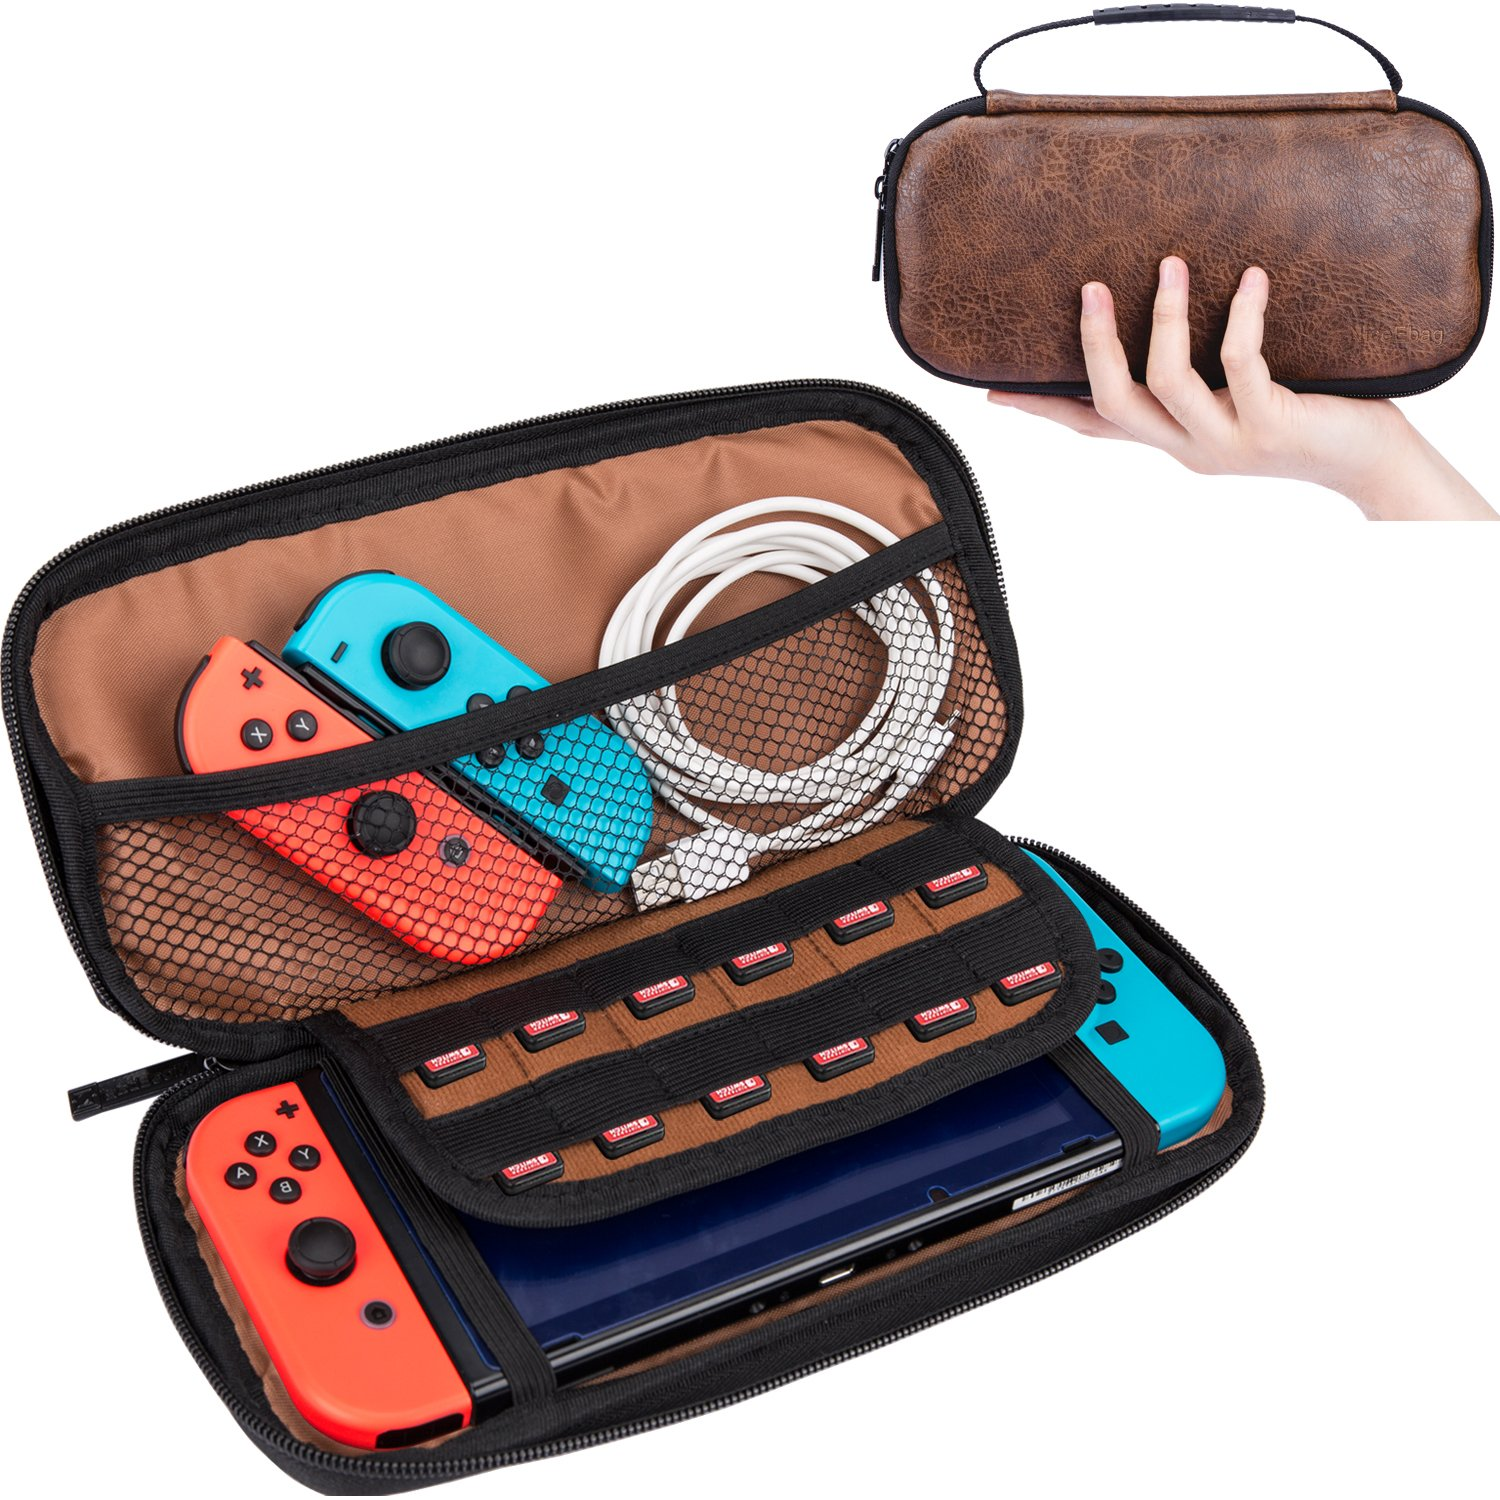 NiceEbag Leather Nintendo Switch Case Deluxe Travel Console Protective Sleeve Rainproof Electronic Accessories Storage Bag Vintage Game Carrying Case With 12 Build-In Game Card Holders